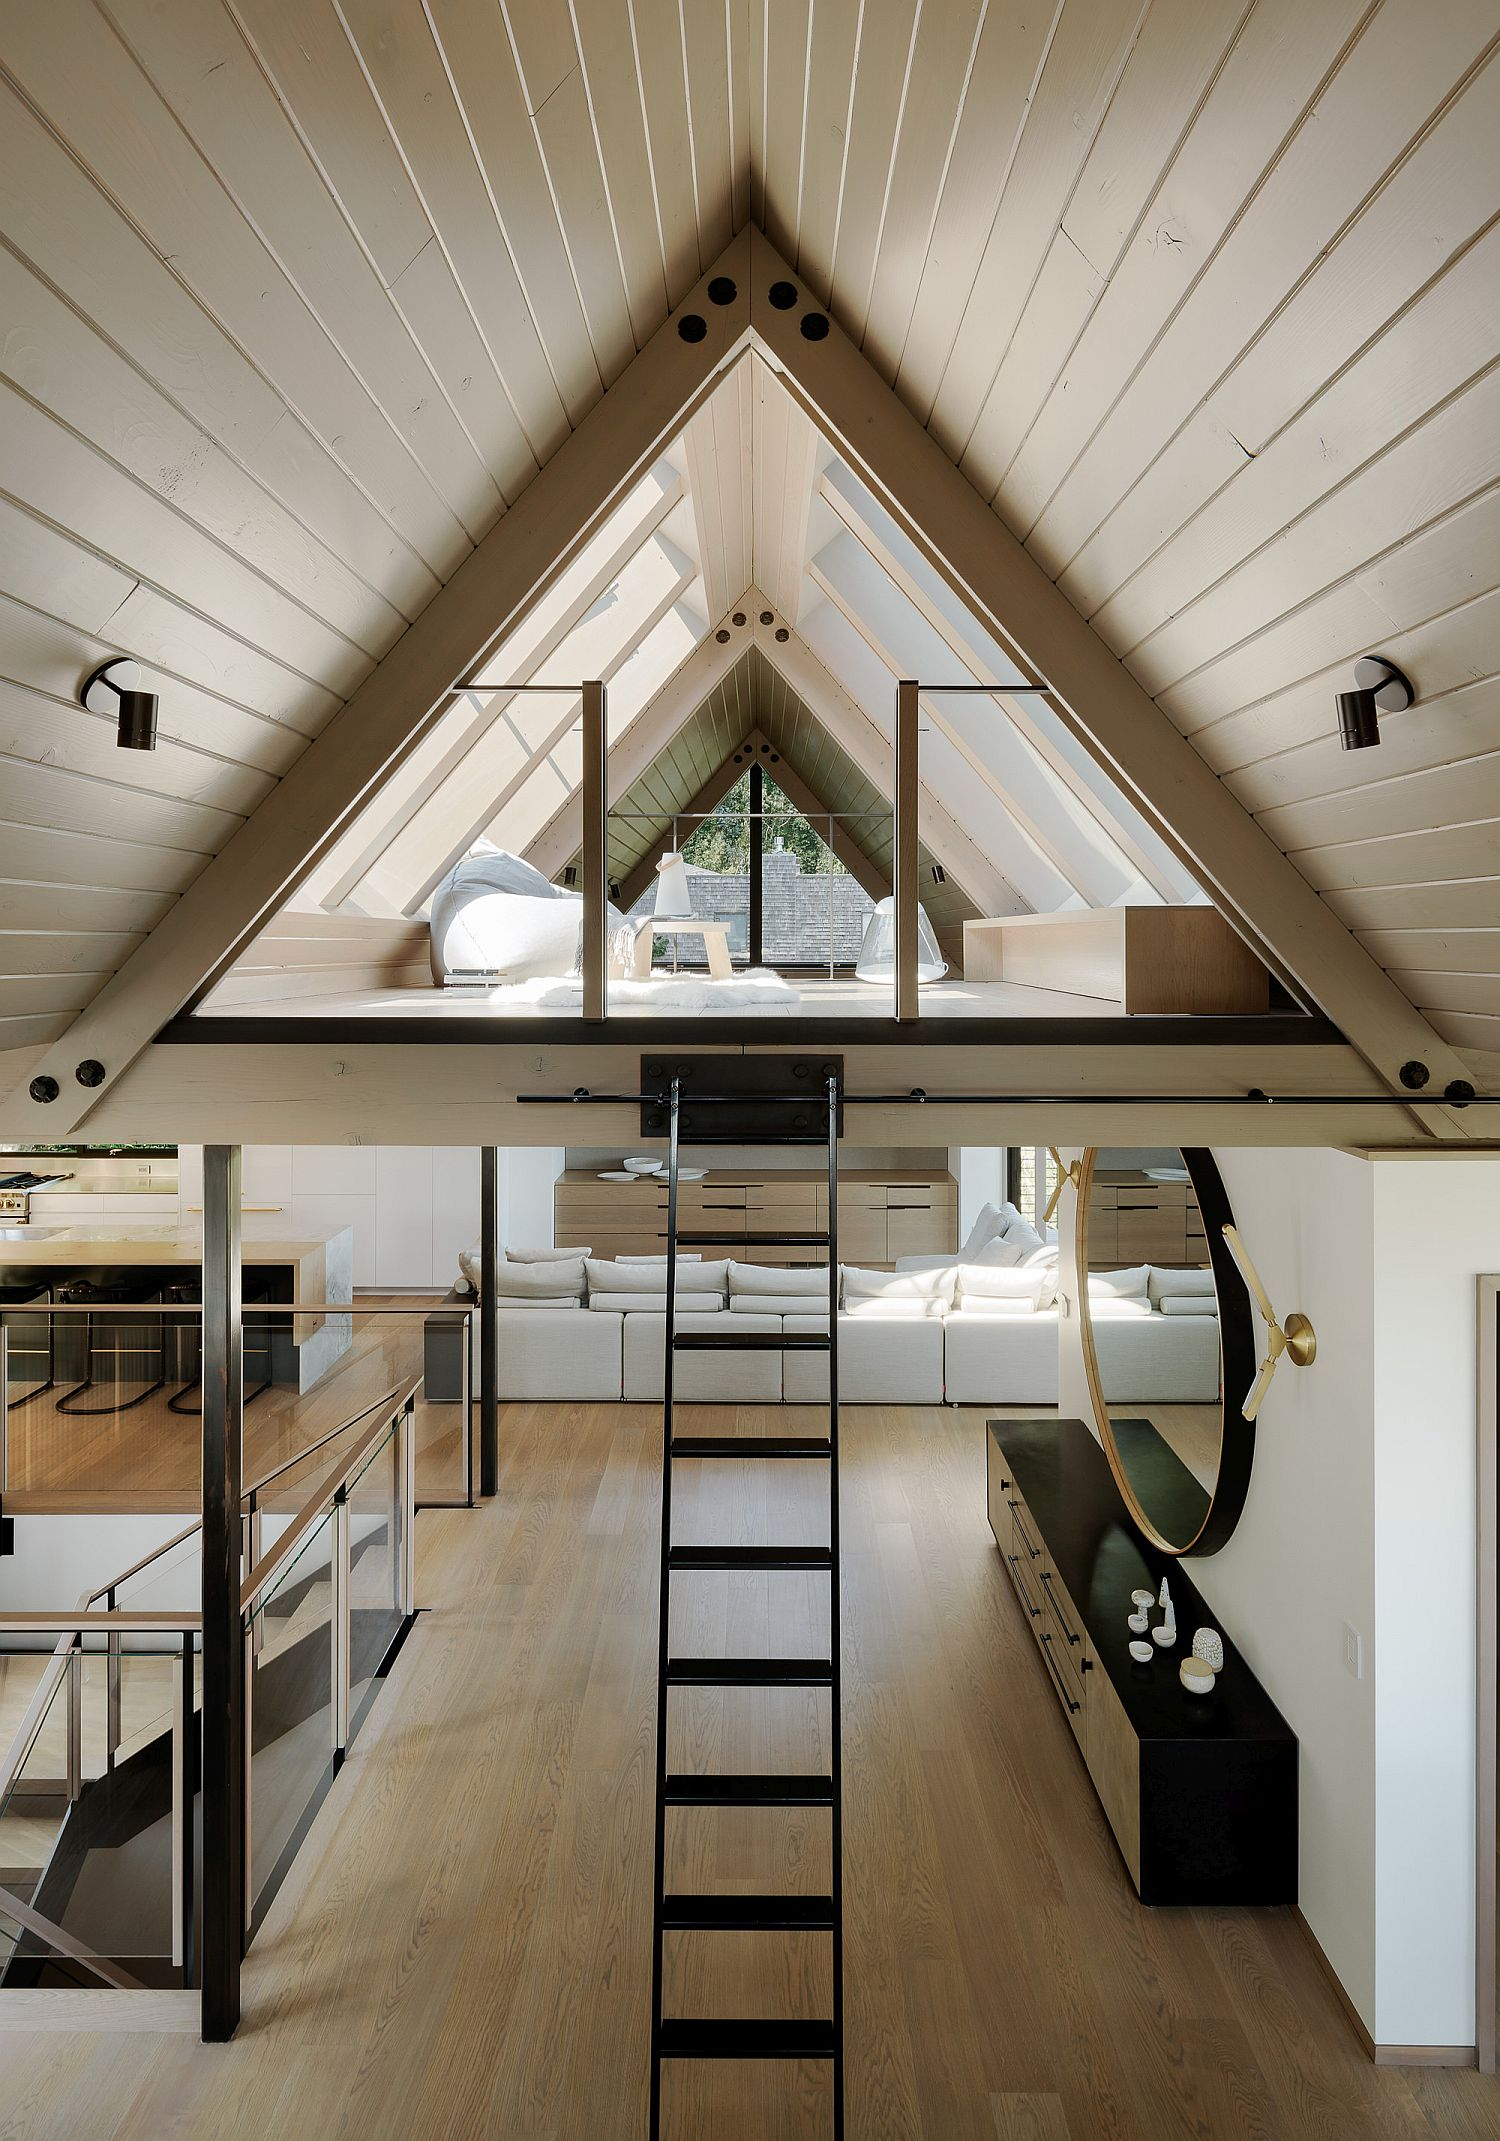 Attic sitting and recreational area of the house